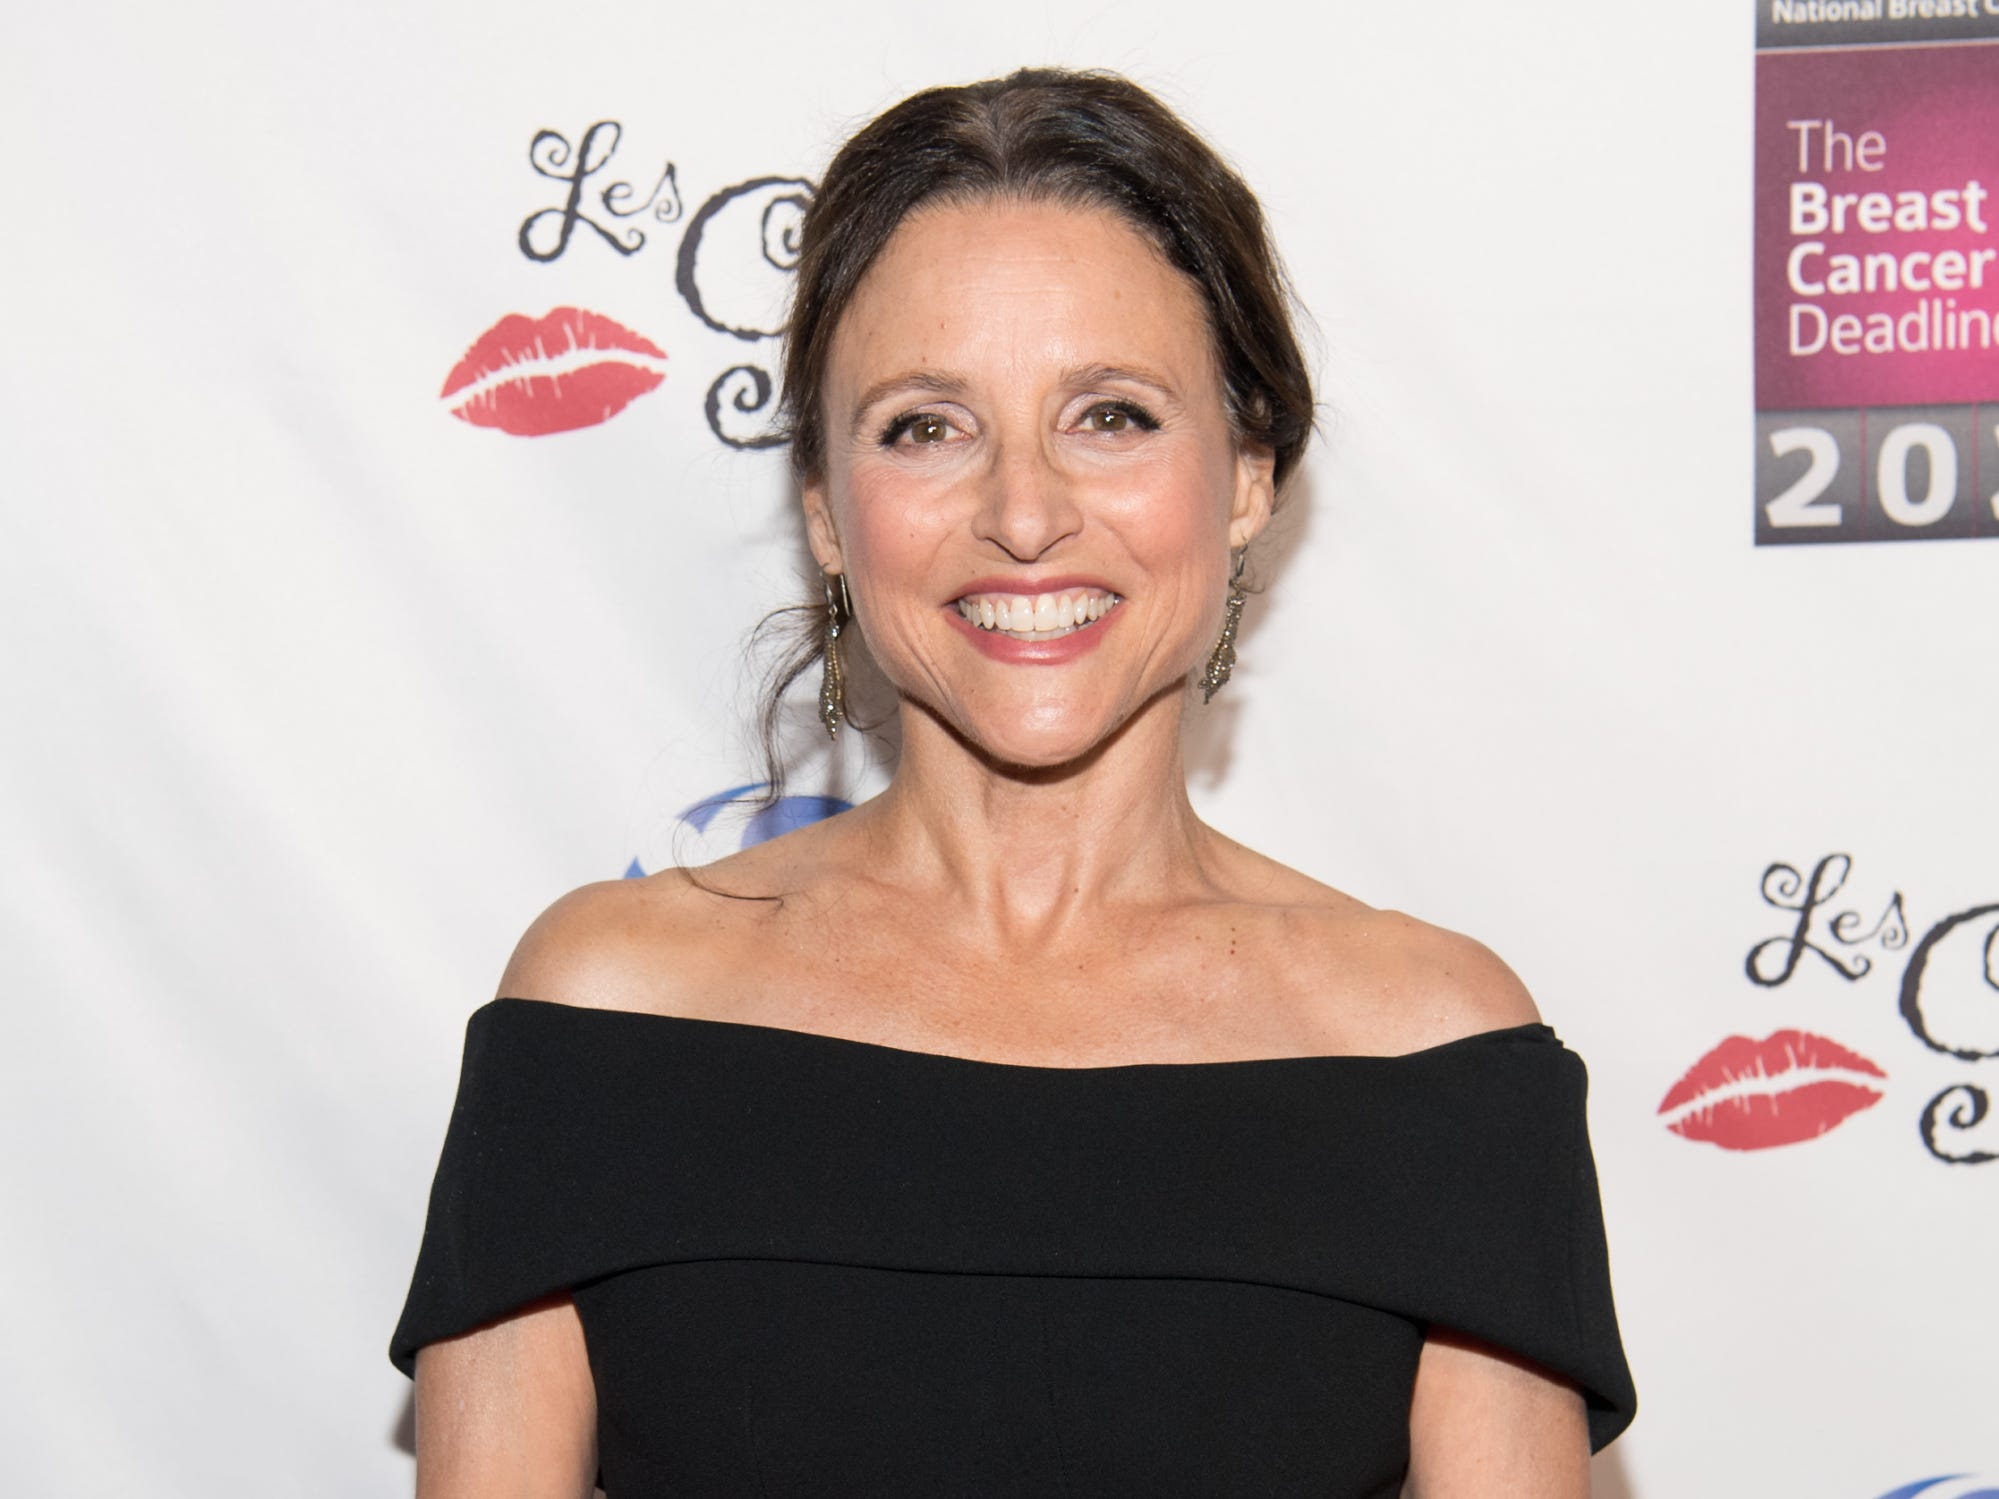 Here's why Julia Louis-Dreyfus made her cancer battle public